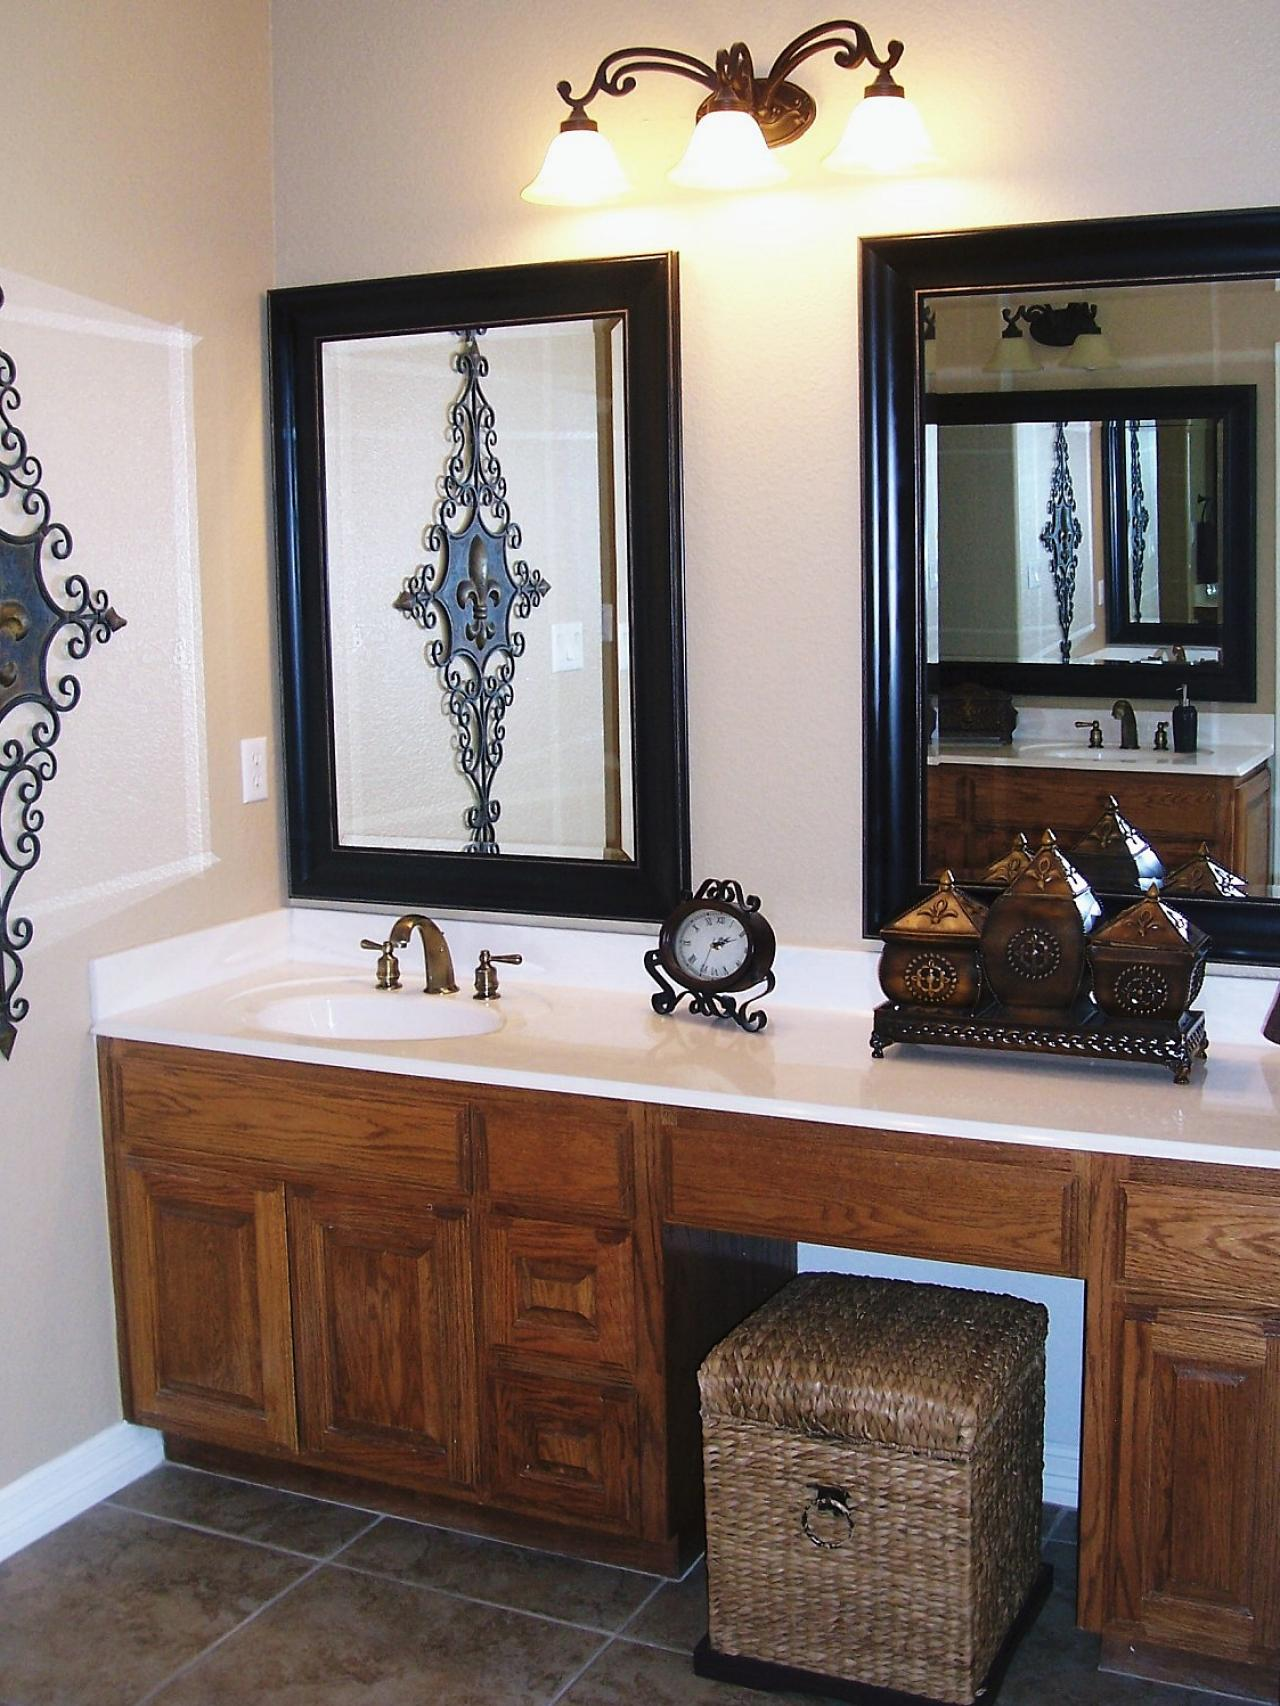 Bathroom vanity mirrors hgtv for Bathroom vanity mirrors